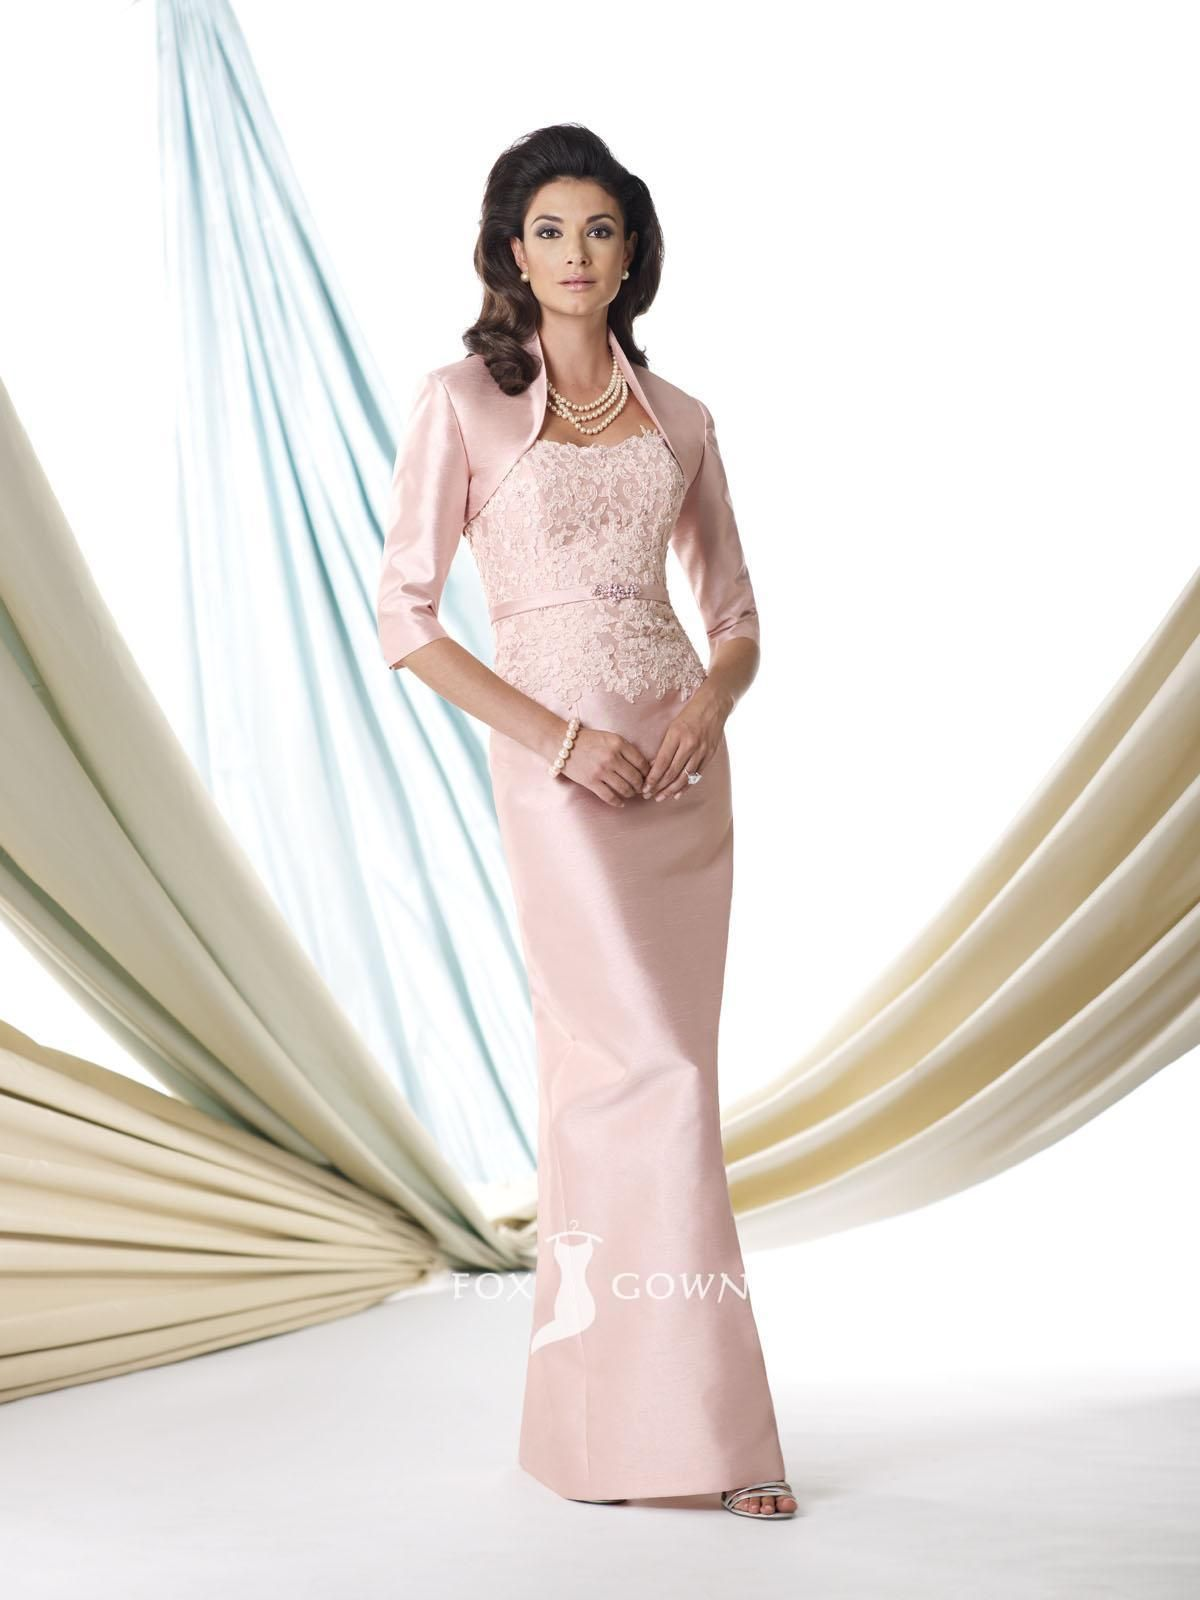 Blush satin strapless lace applique bodice floor length mother of